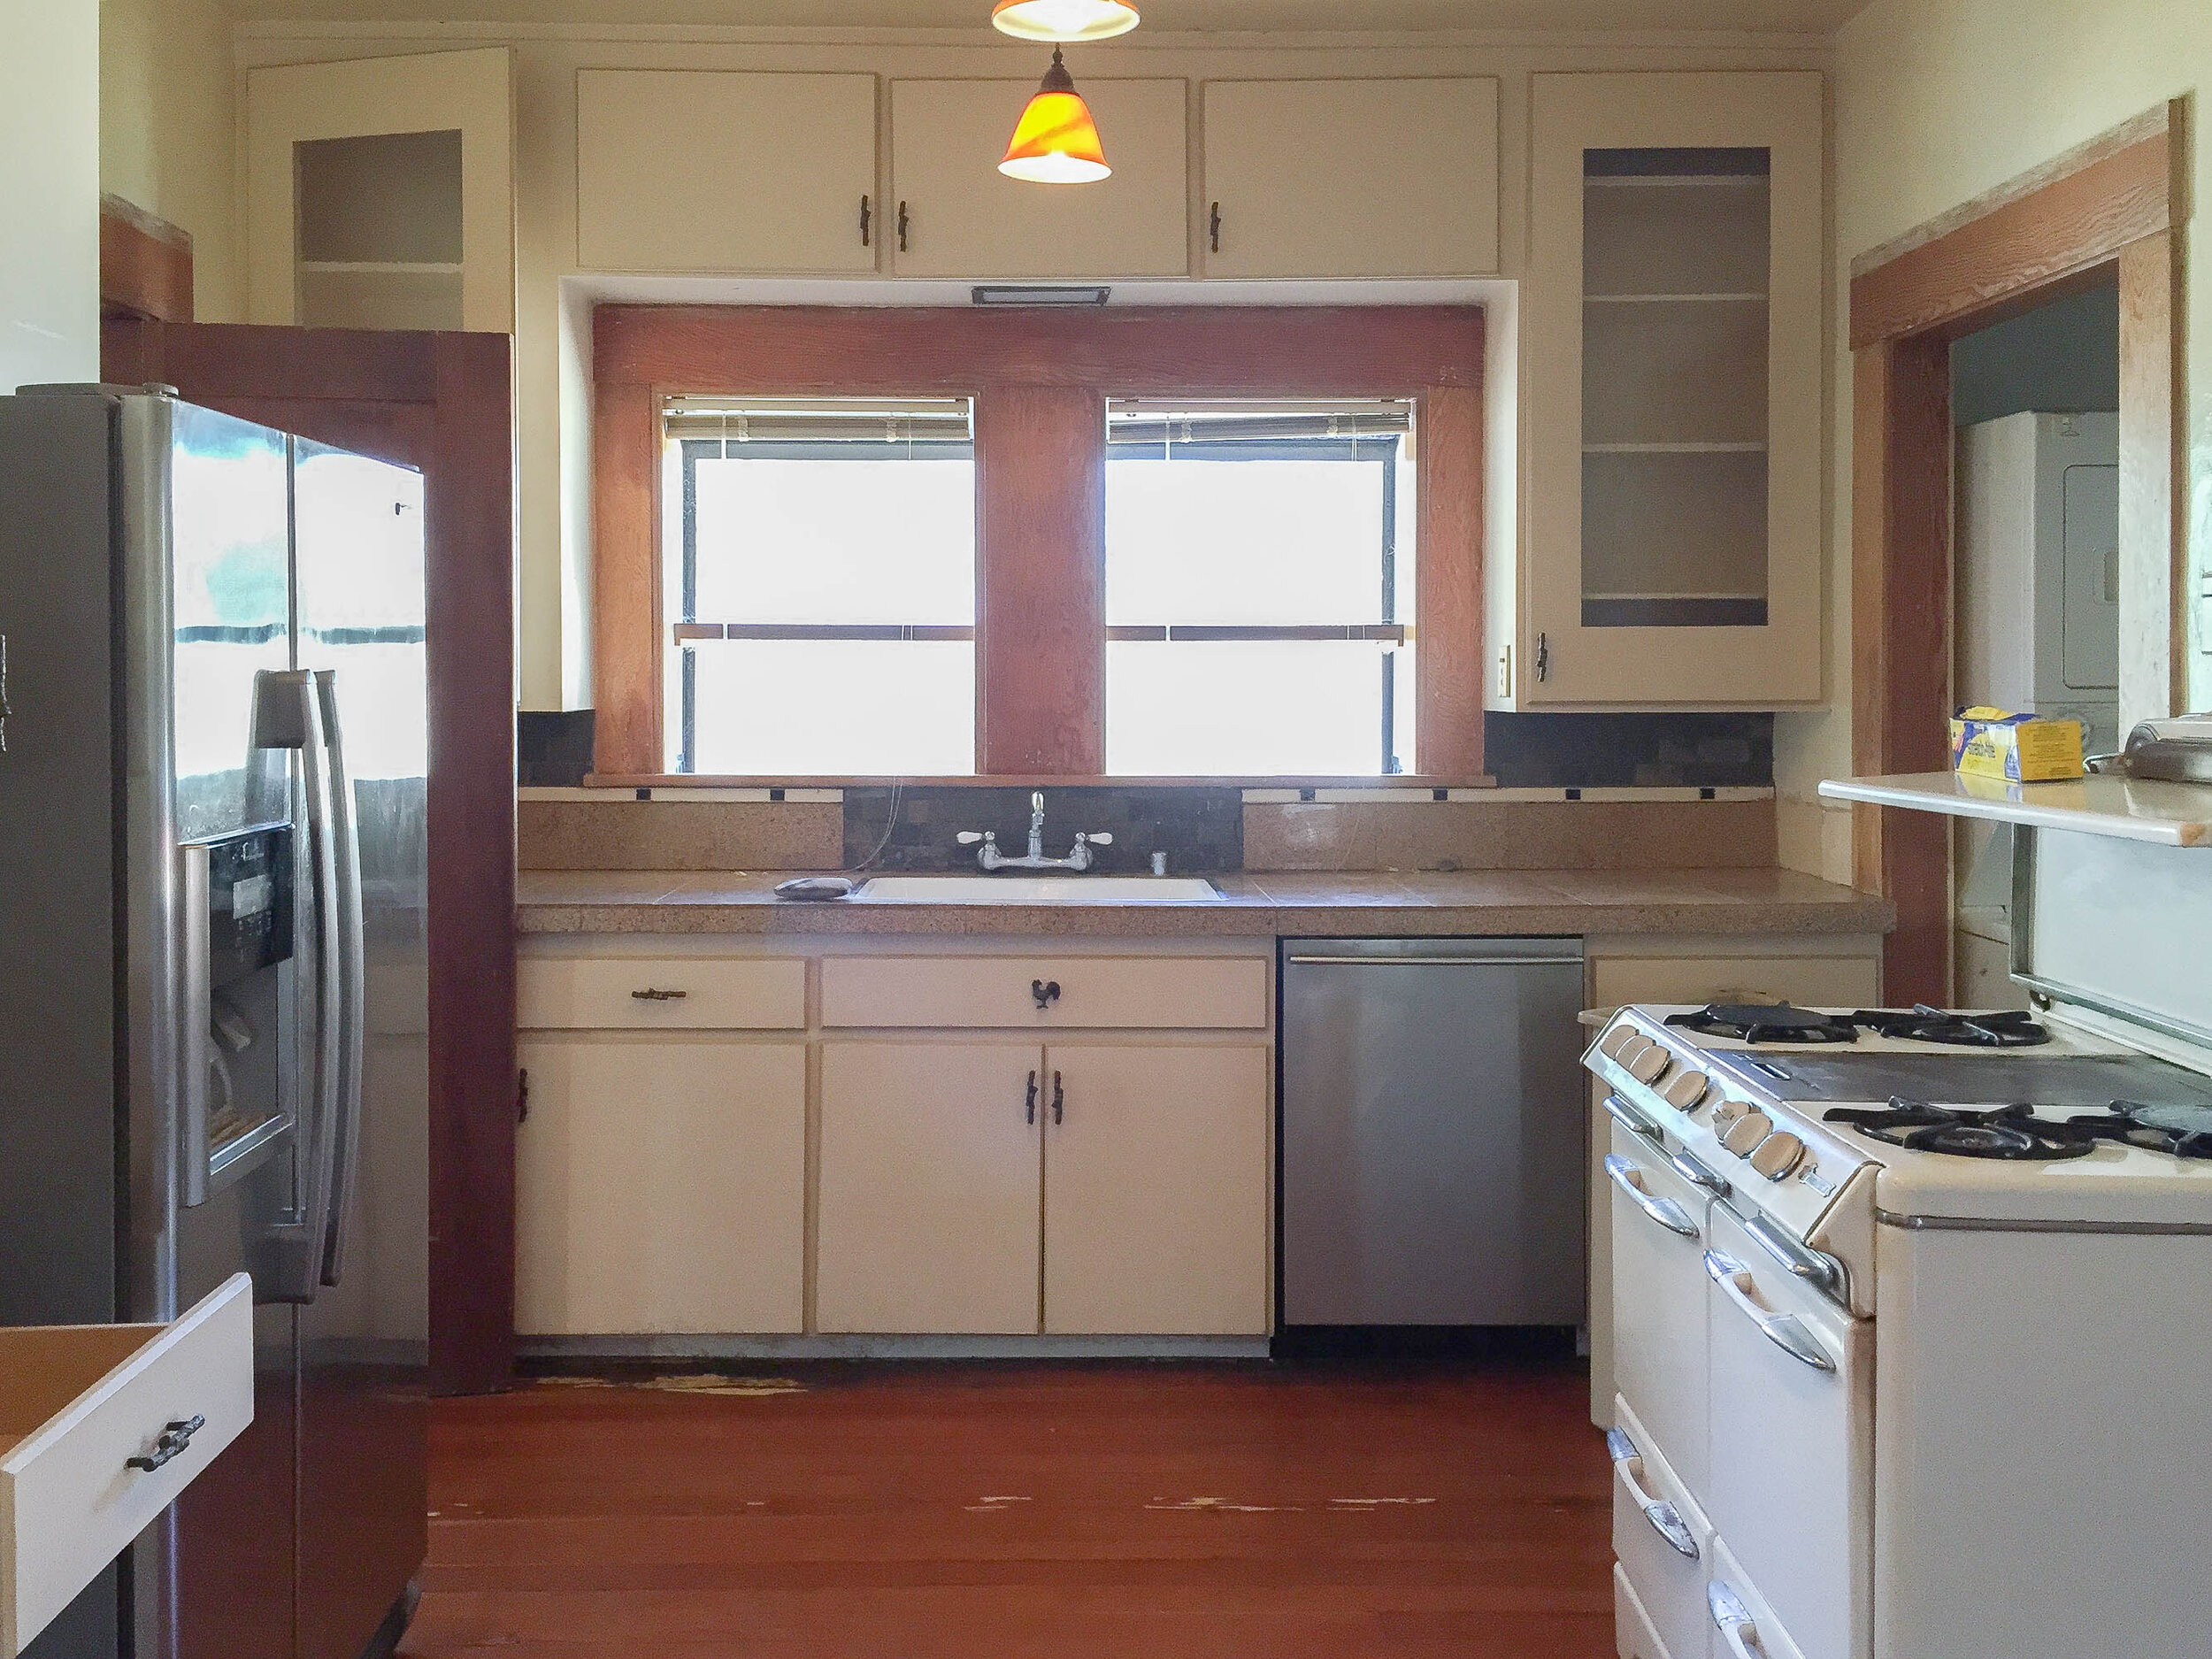 The Gold Hive $600 Kitchen Makeover Craftsman Bungalow Retro Style-4929.jpg